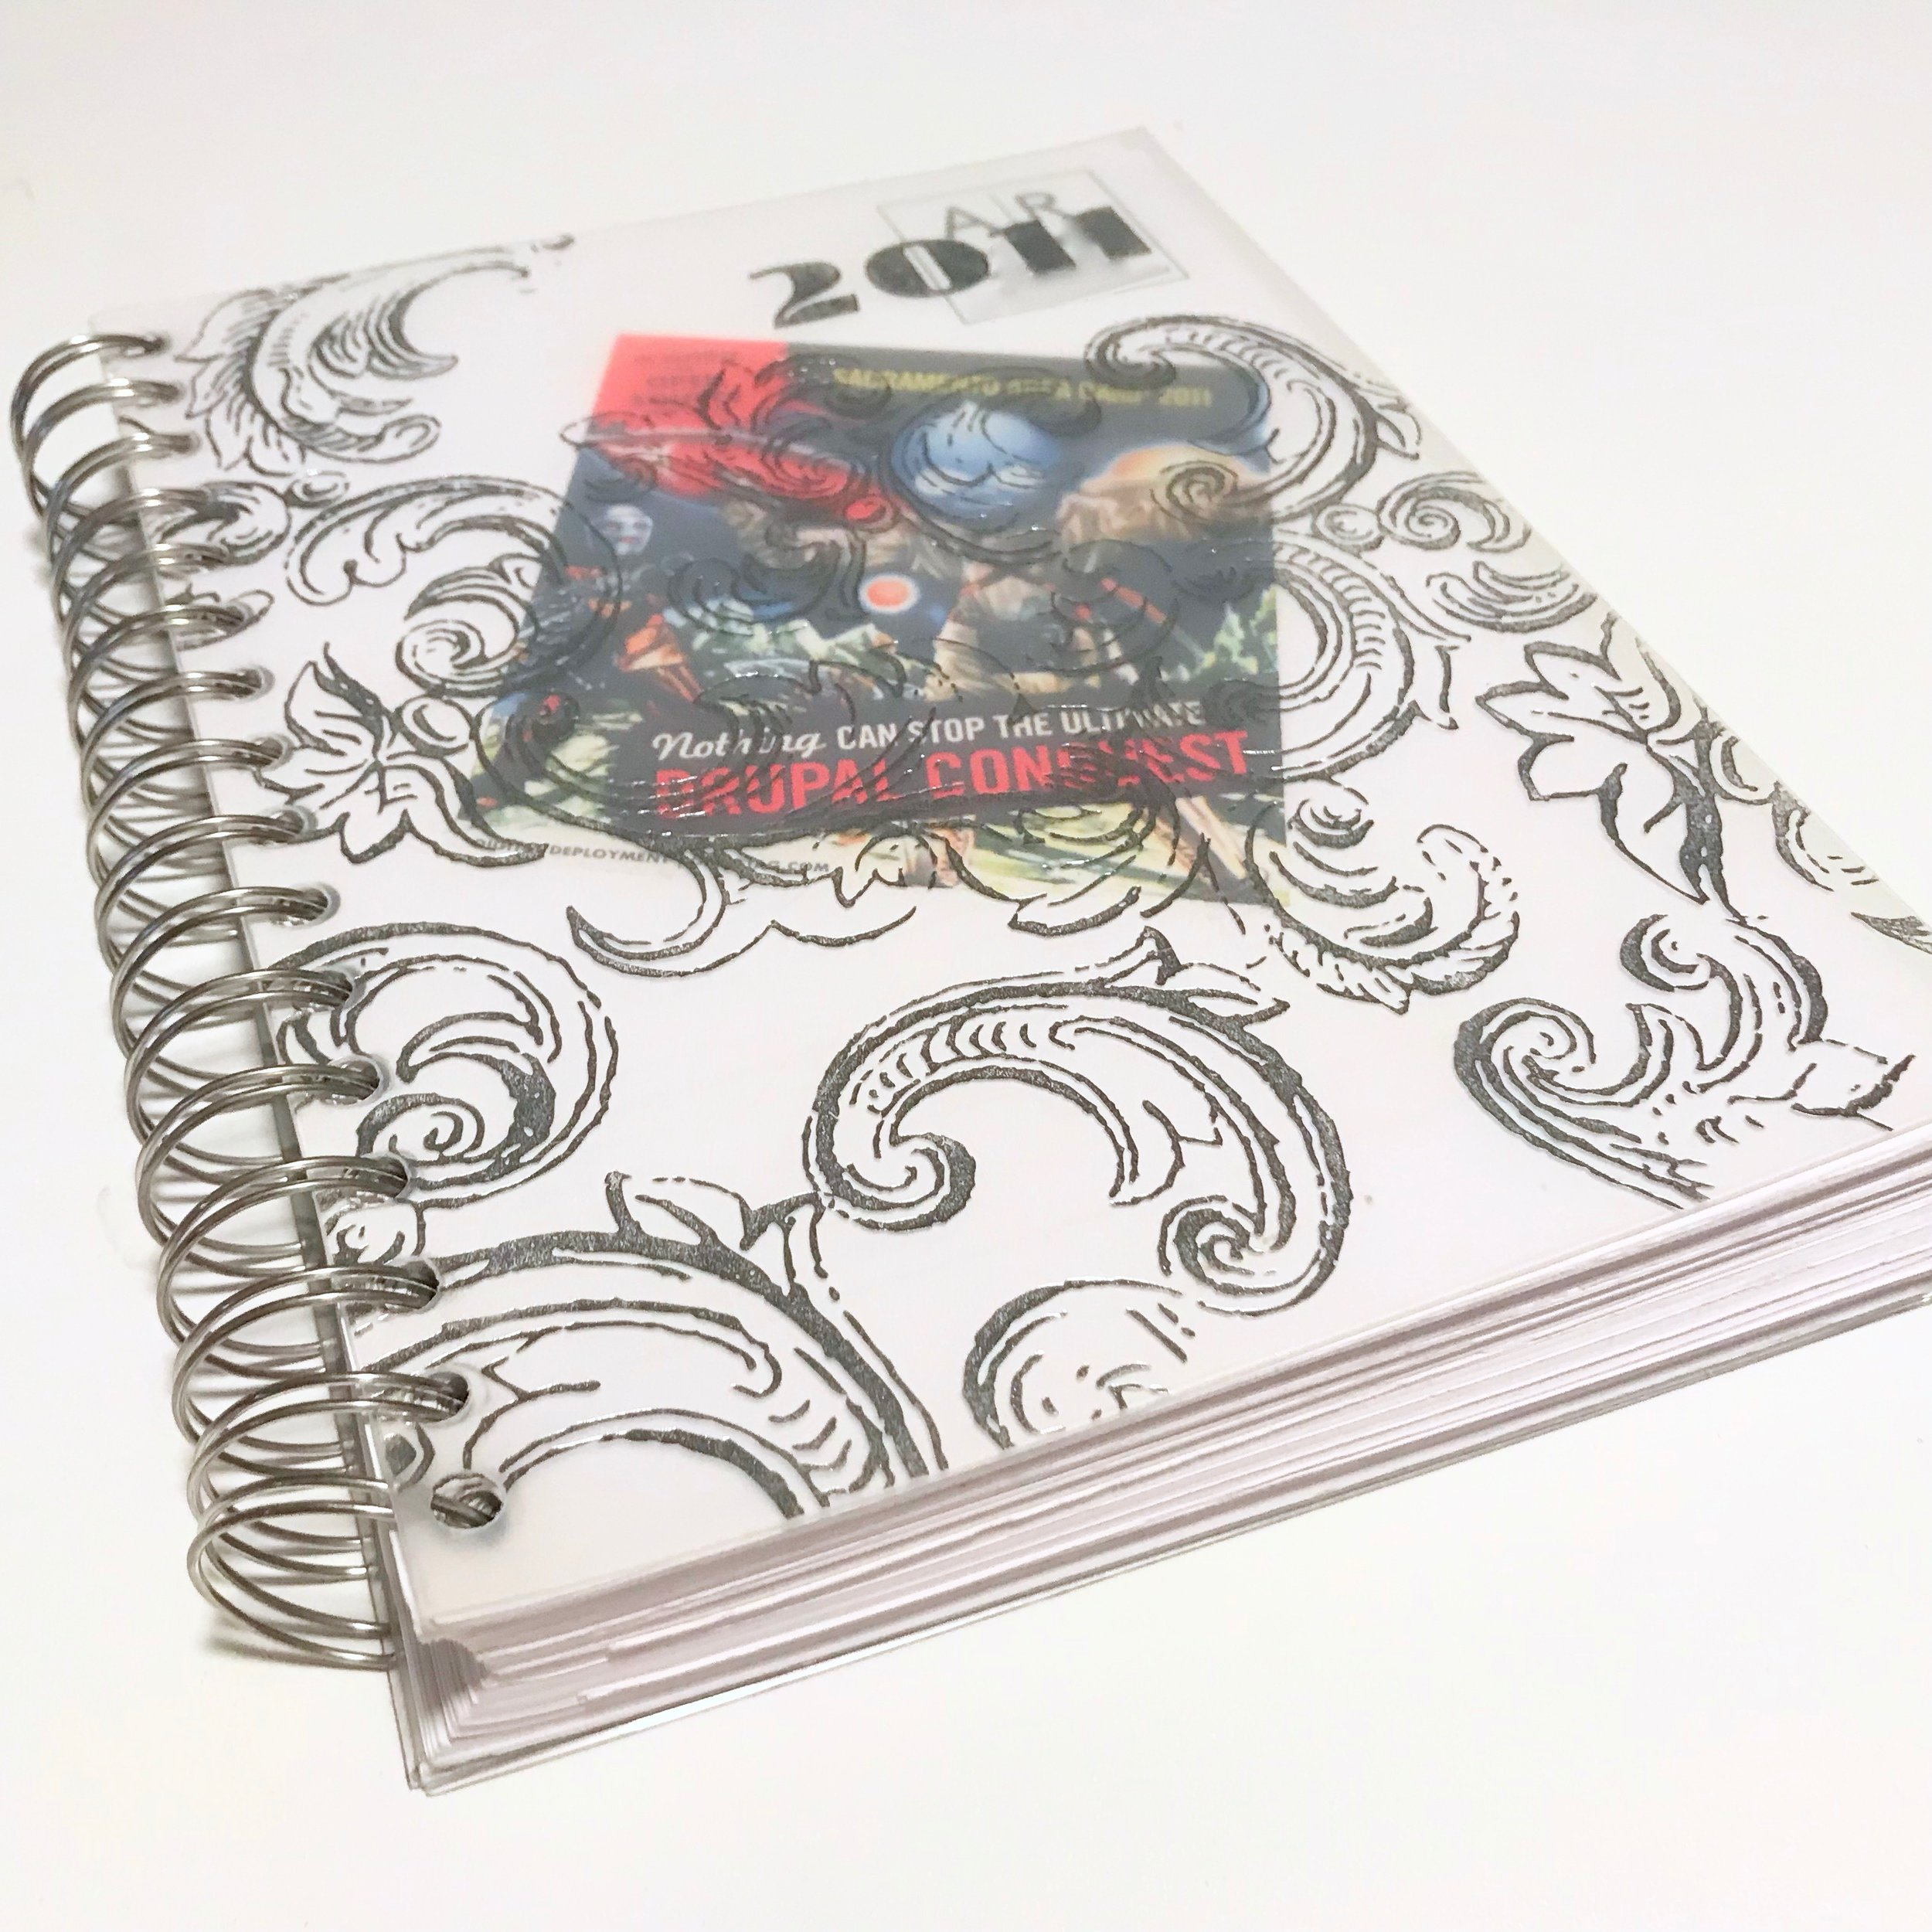 A spiral-bound agenda is an inexpensive planner option.